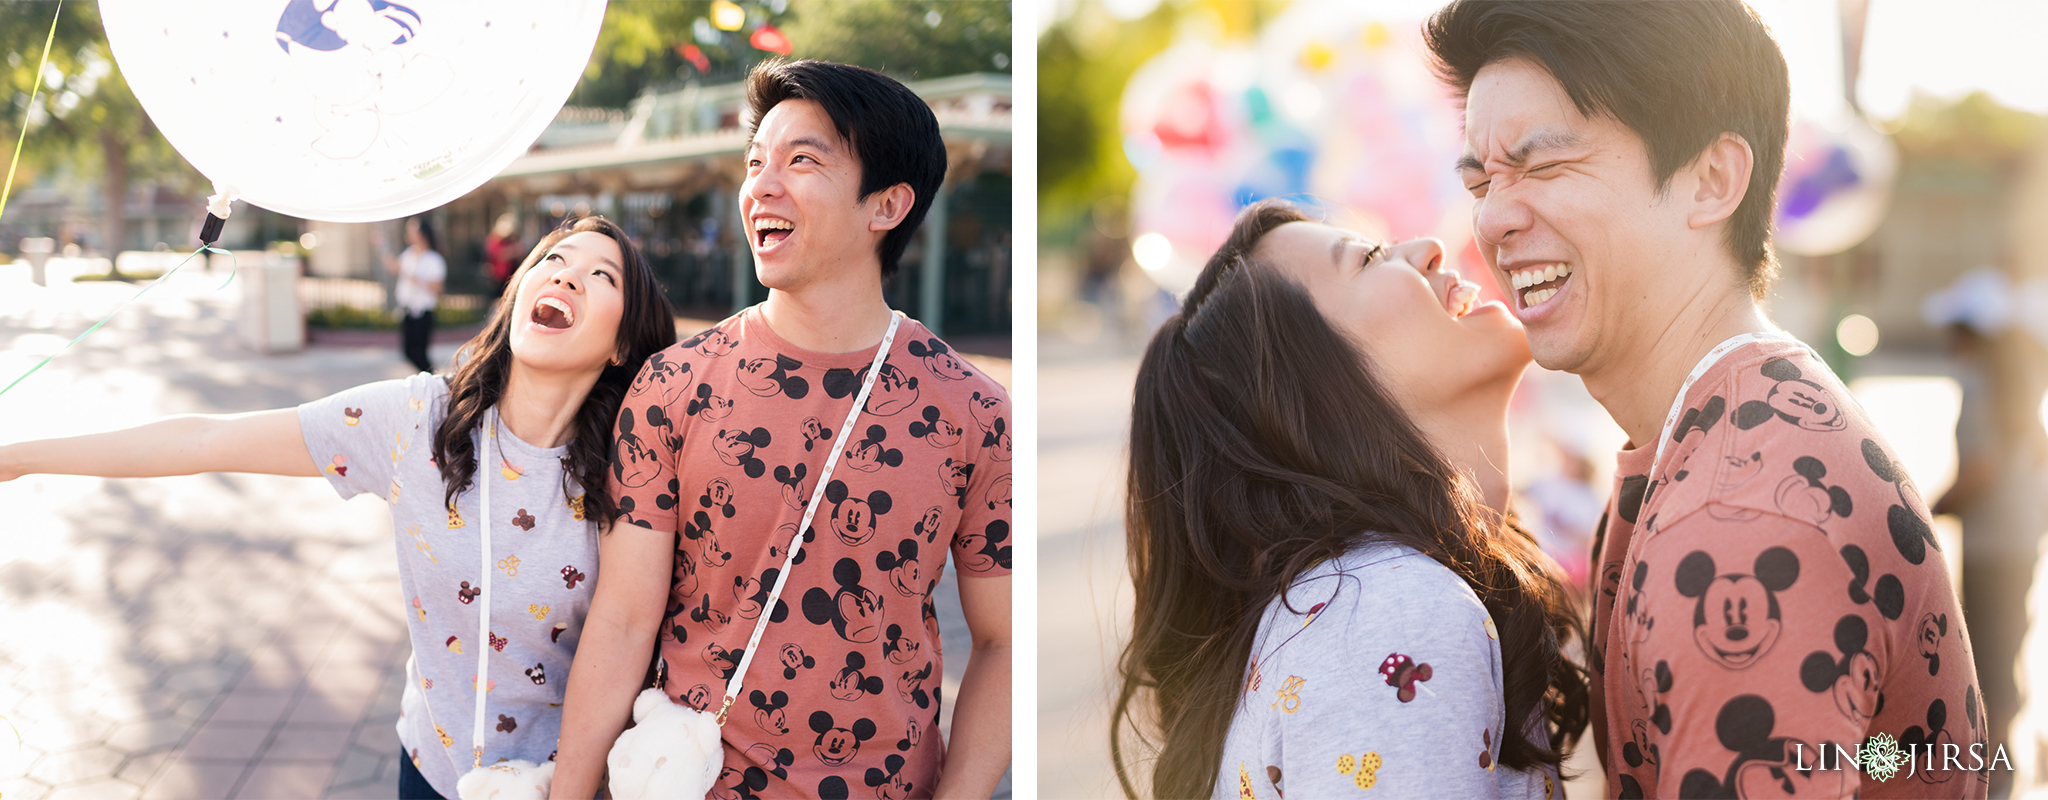 13 Downtown Disney Anaheim Engagement Photography